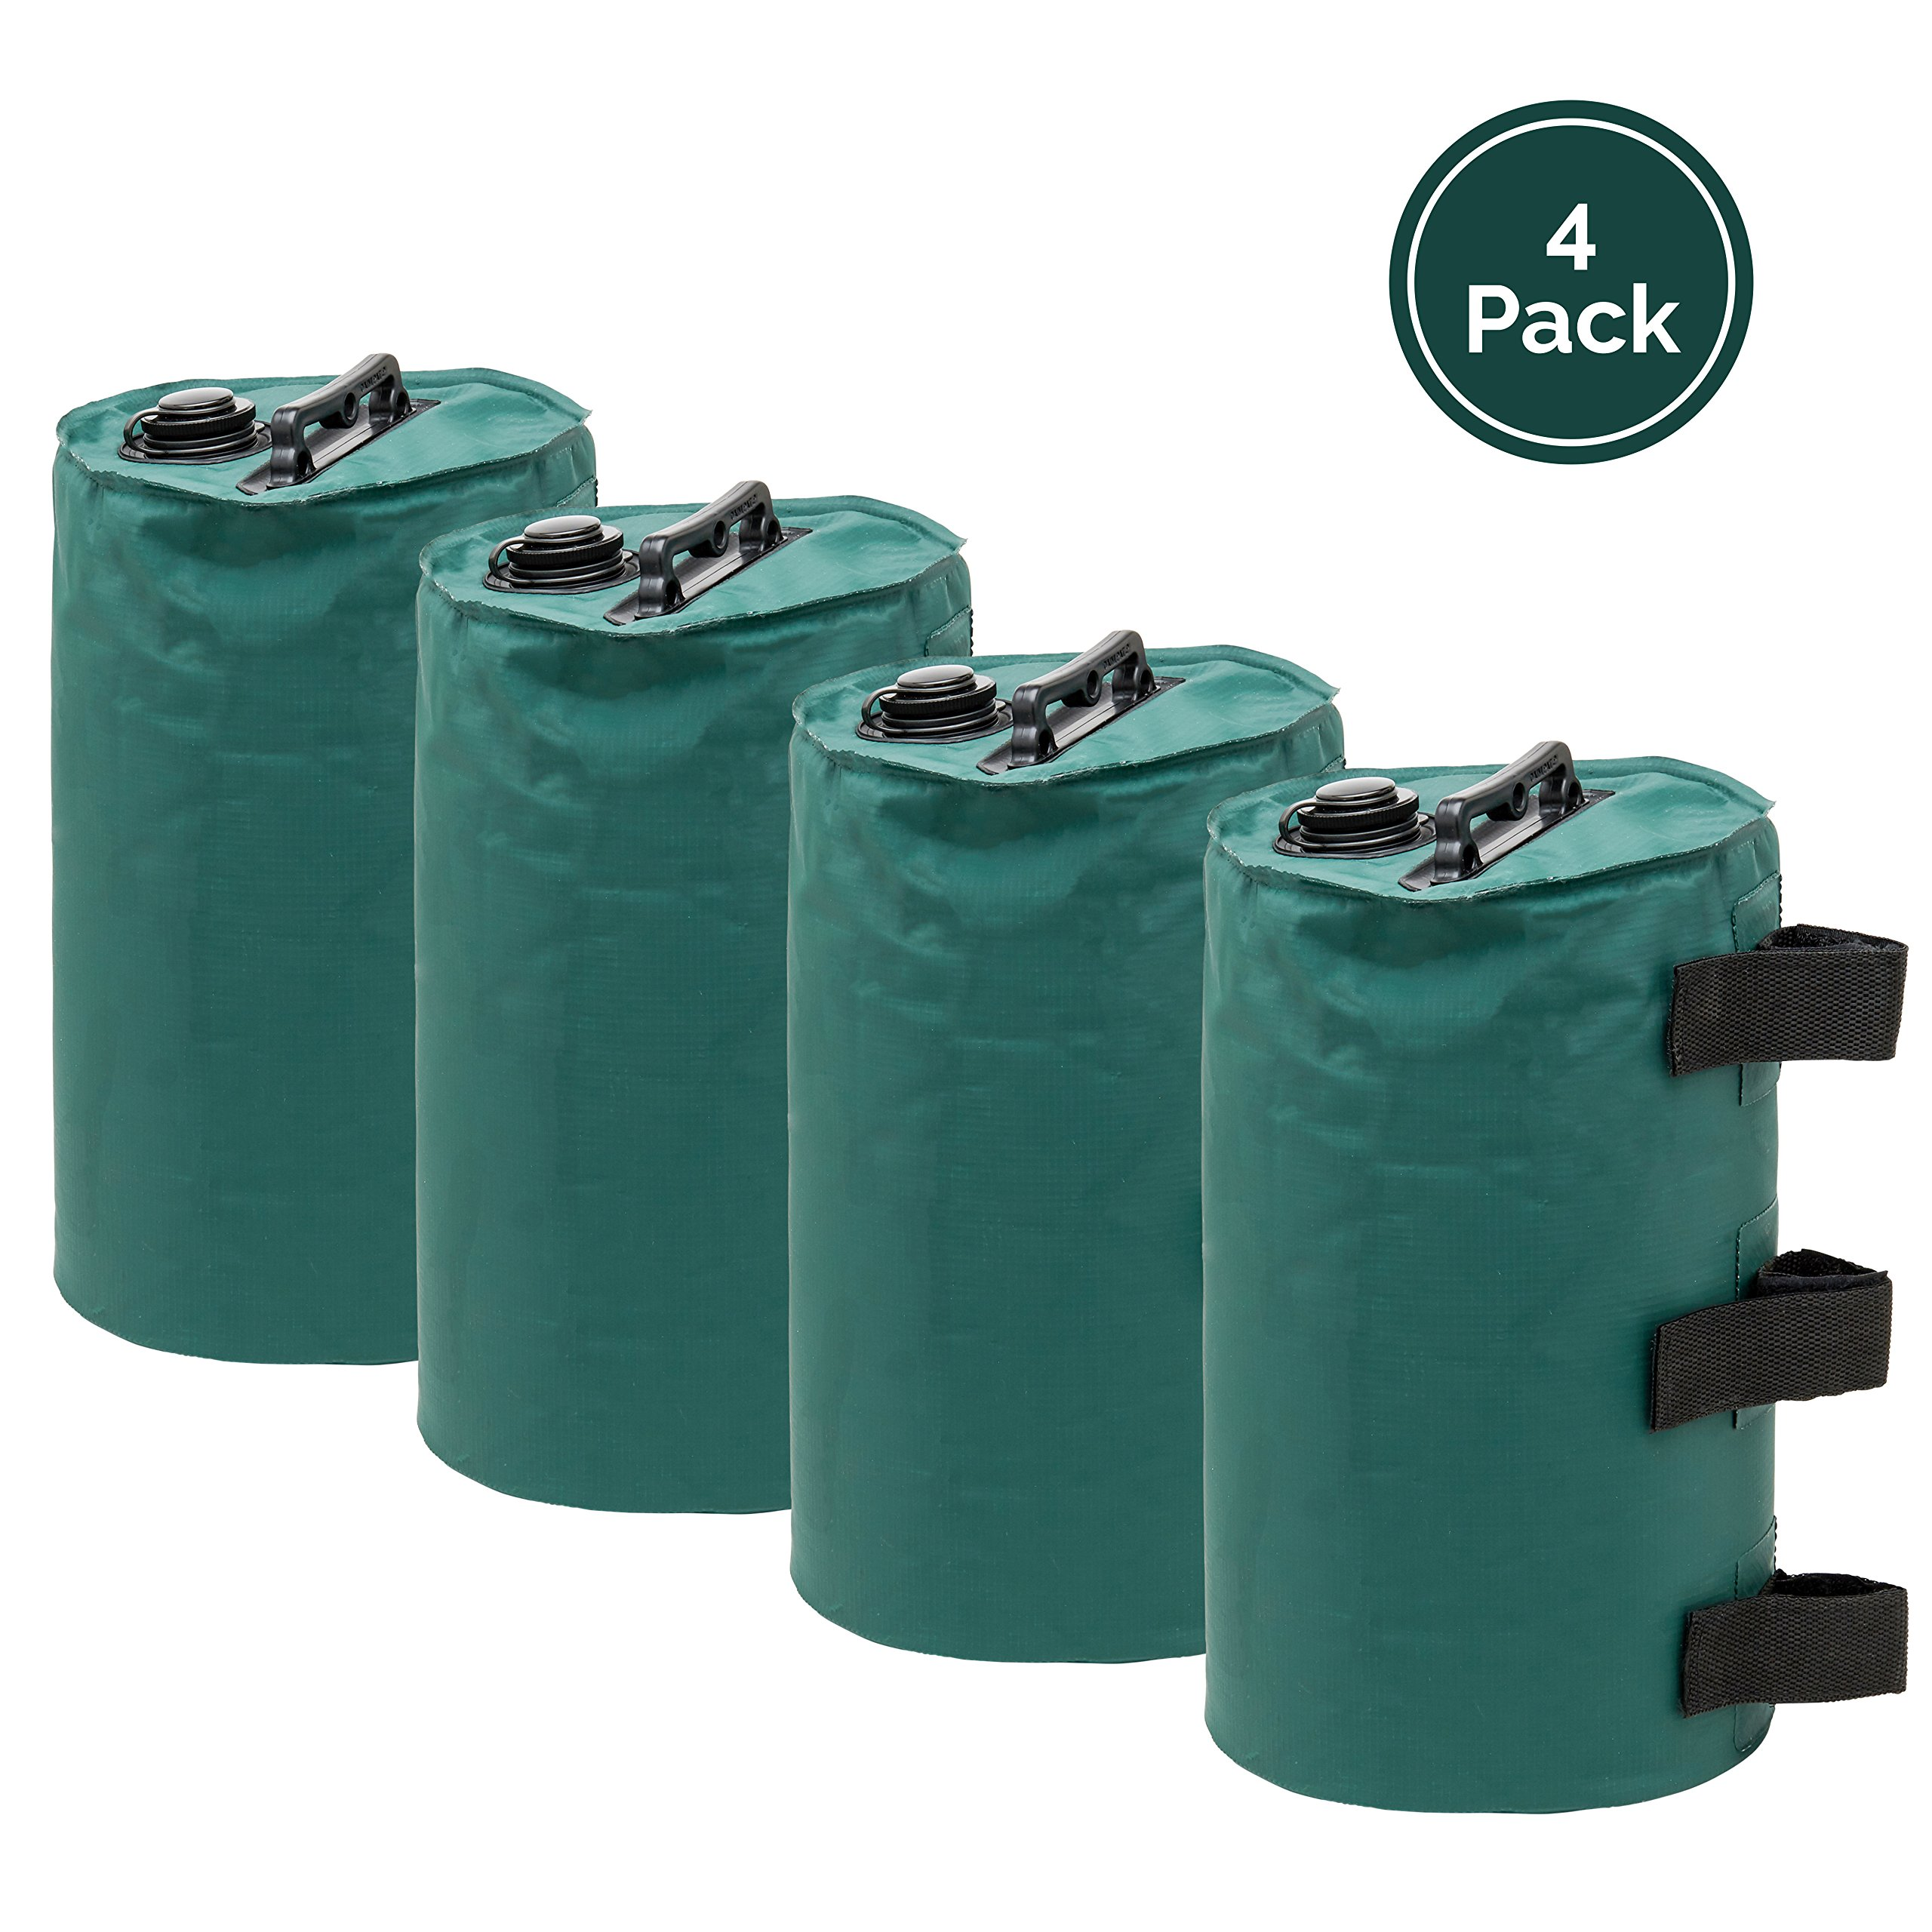 Anavim Canopy Water Weights Bag, Leg Weights for Pop up Canopy 4pcs-pack